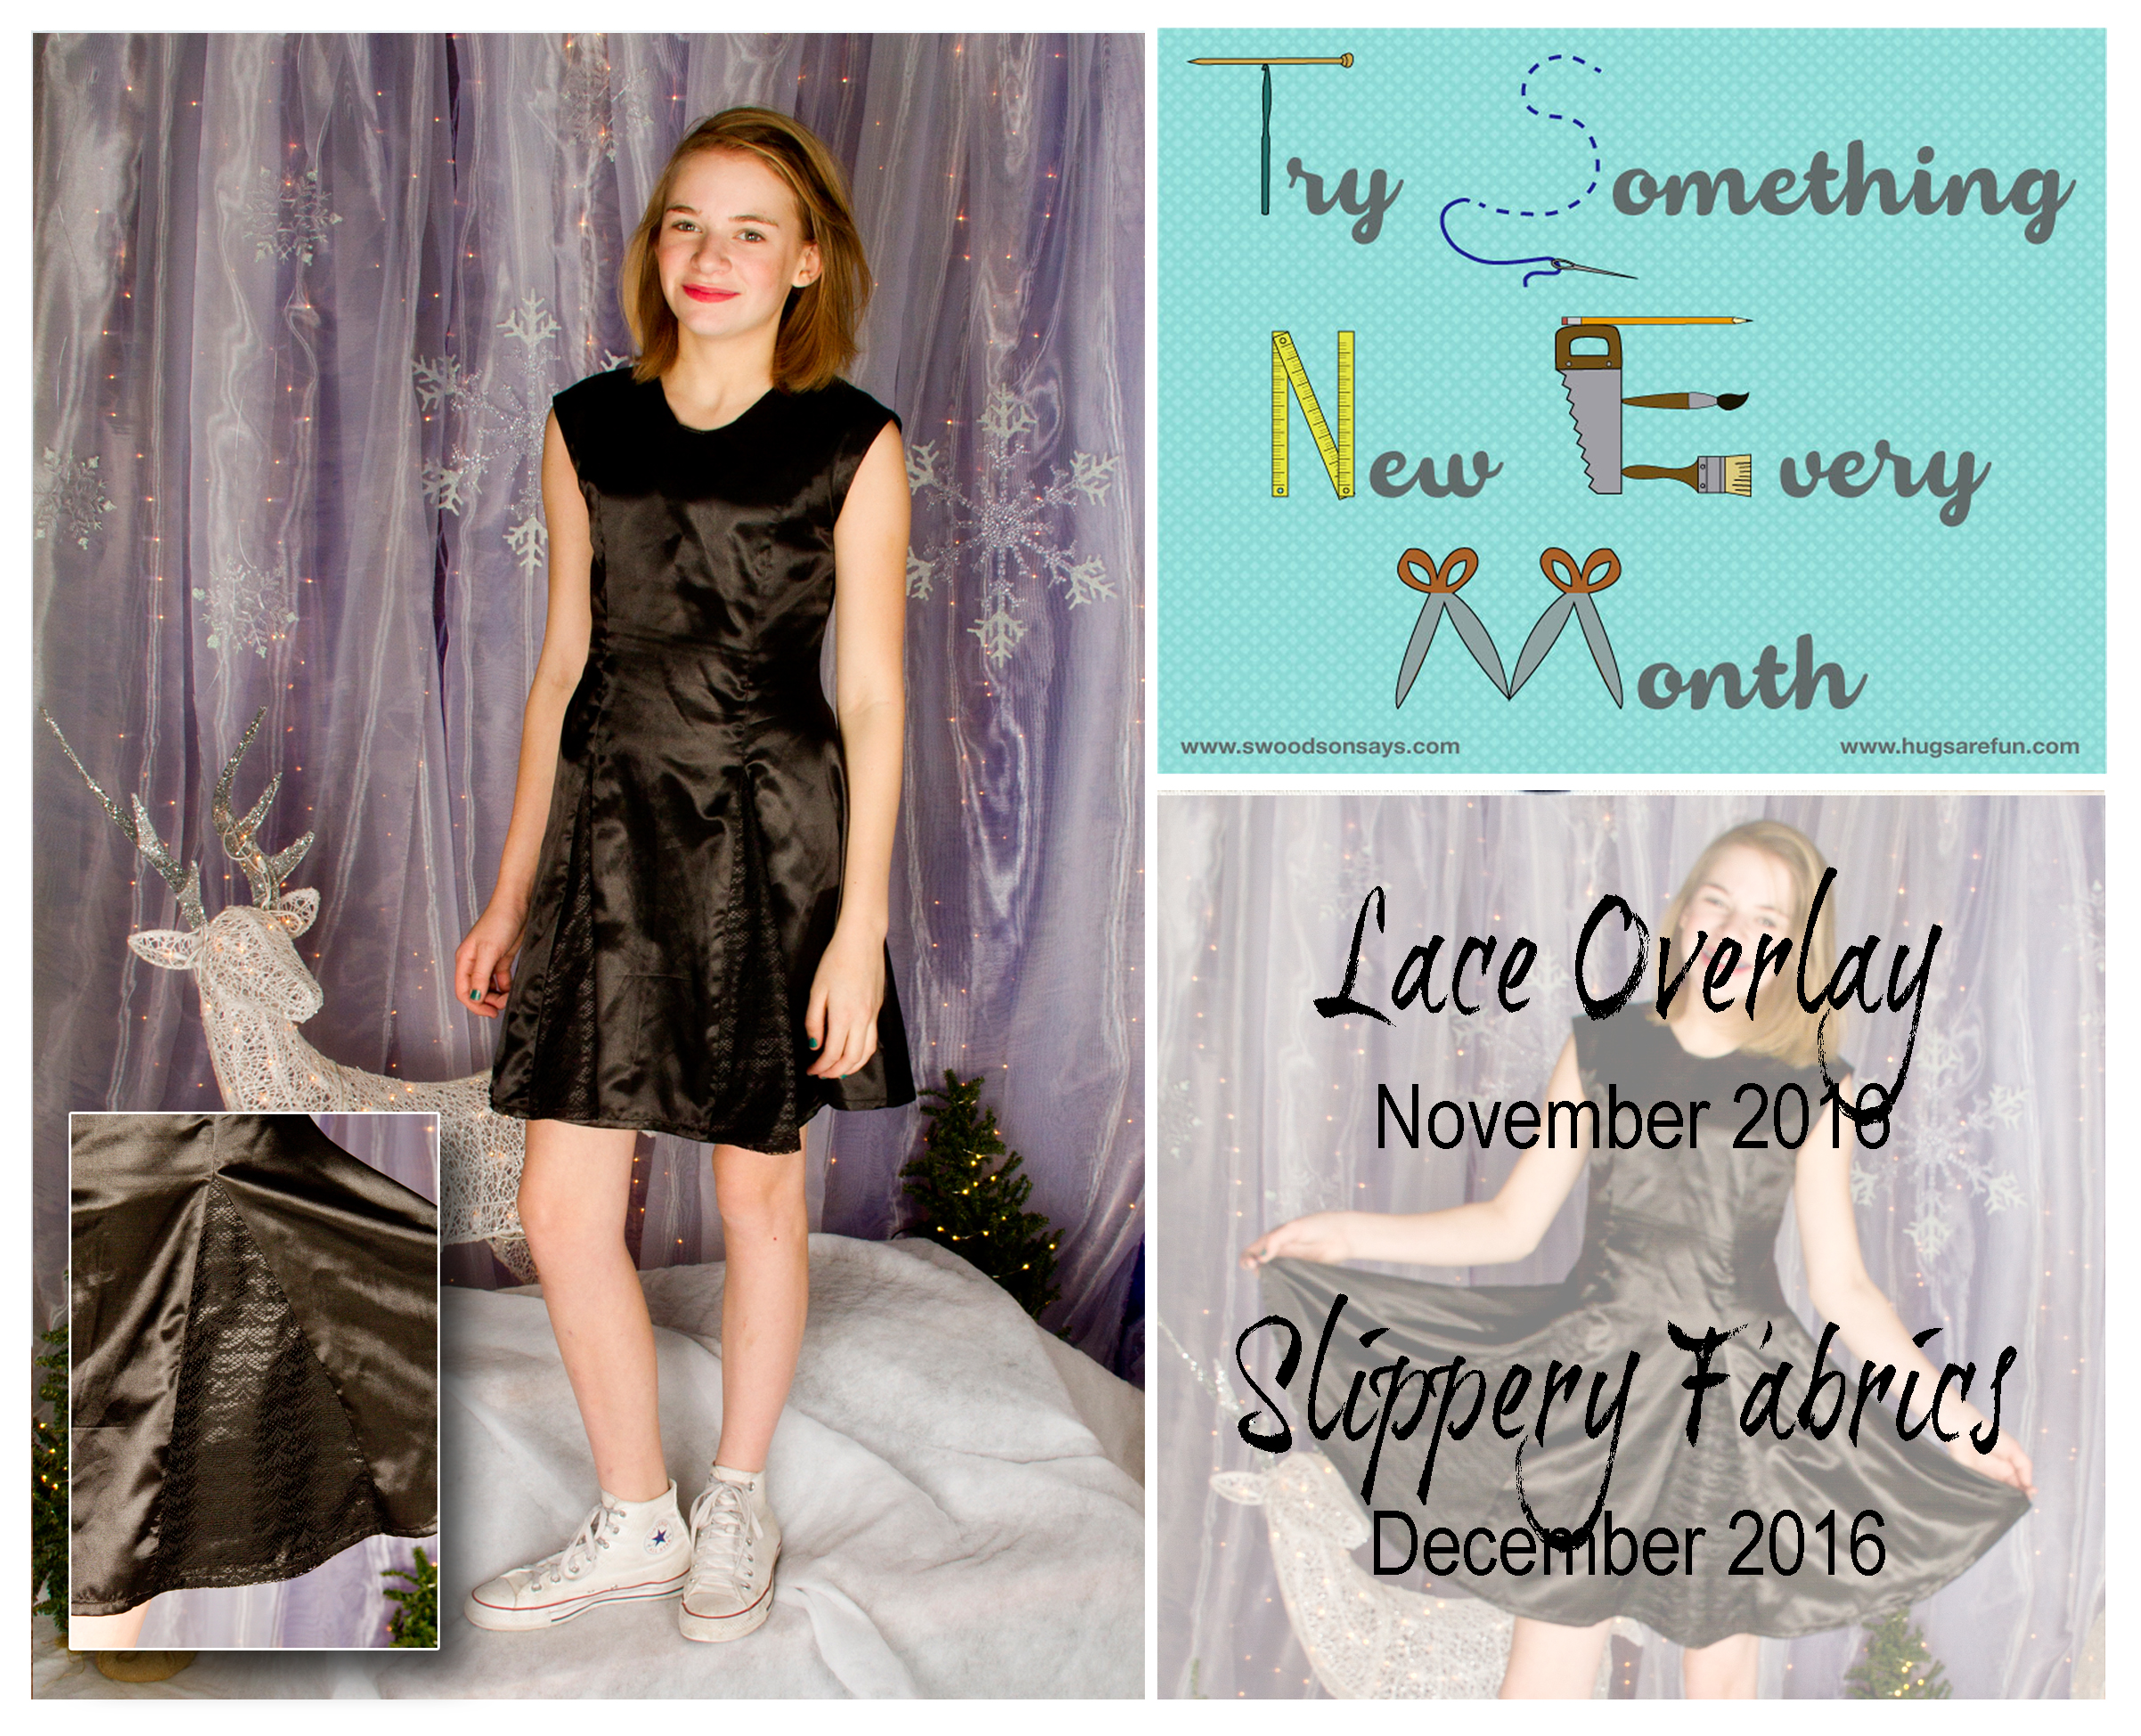 Lace Overlay & Slippery Fabric - November & December TSNEM